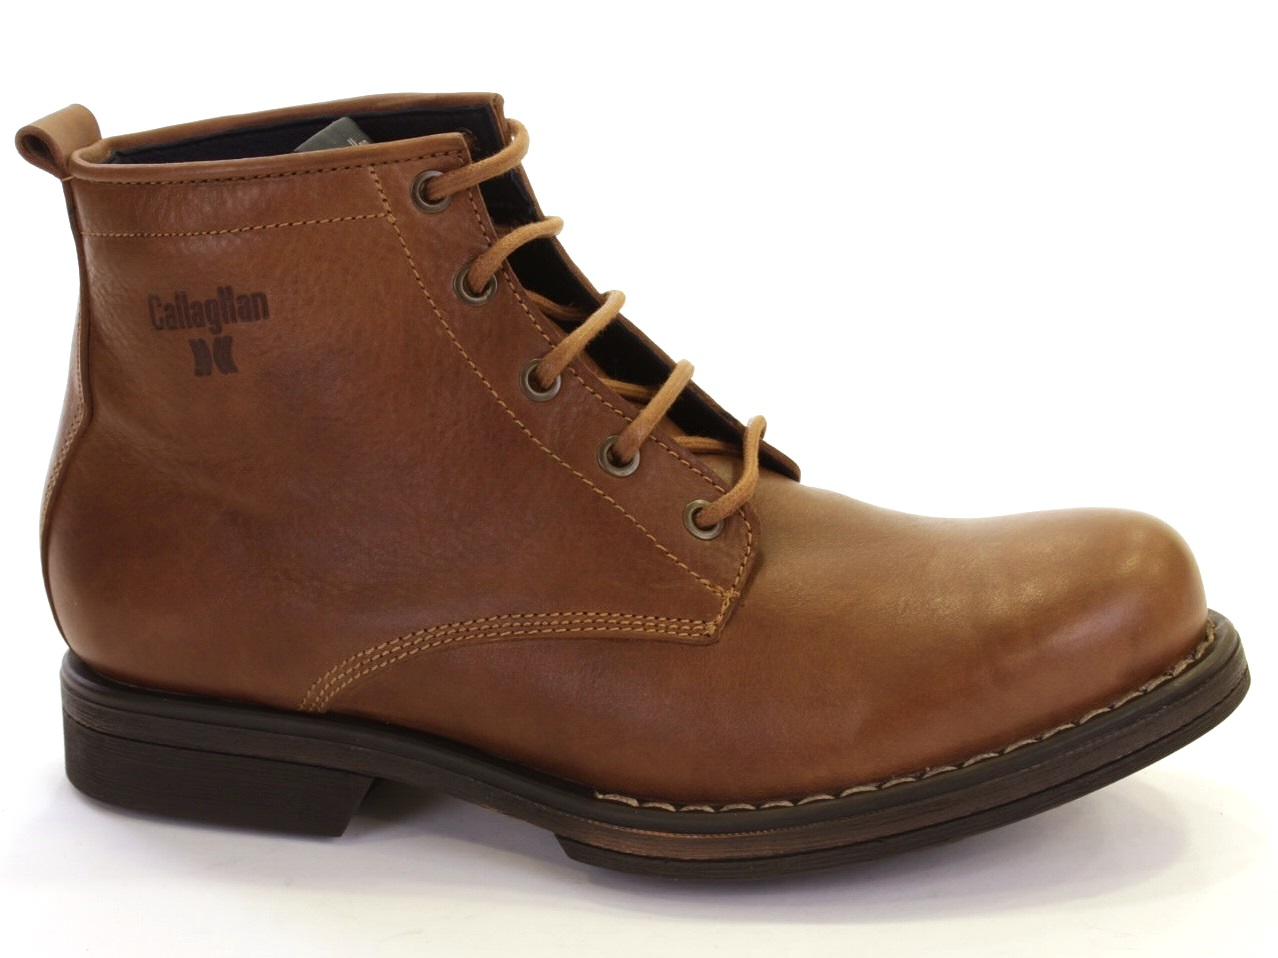 Boots Callaghan - 305 83112